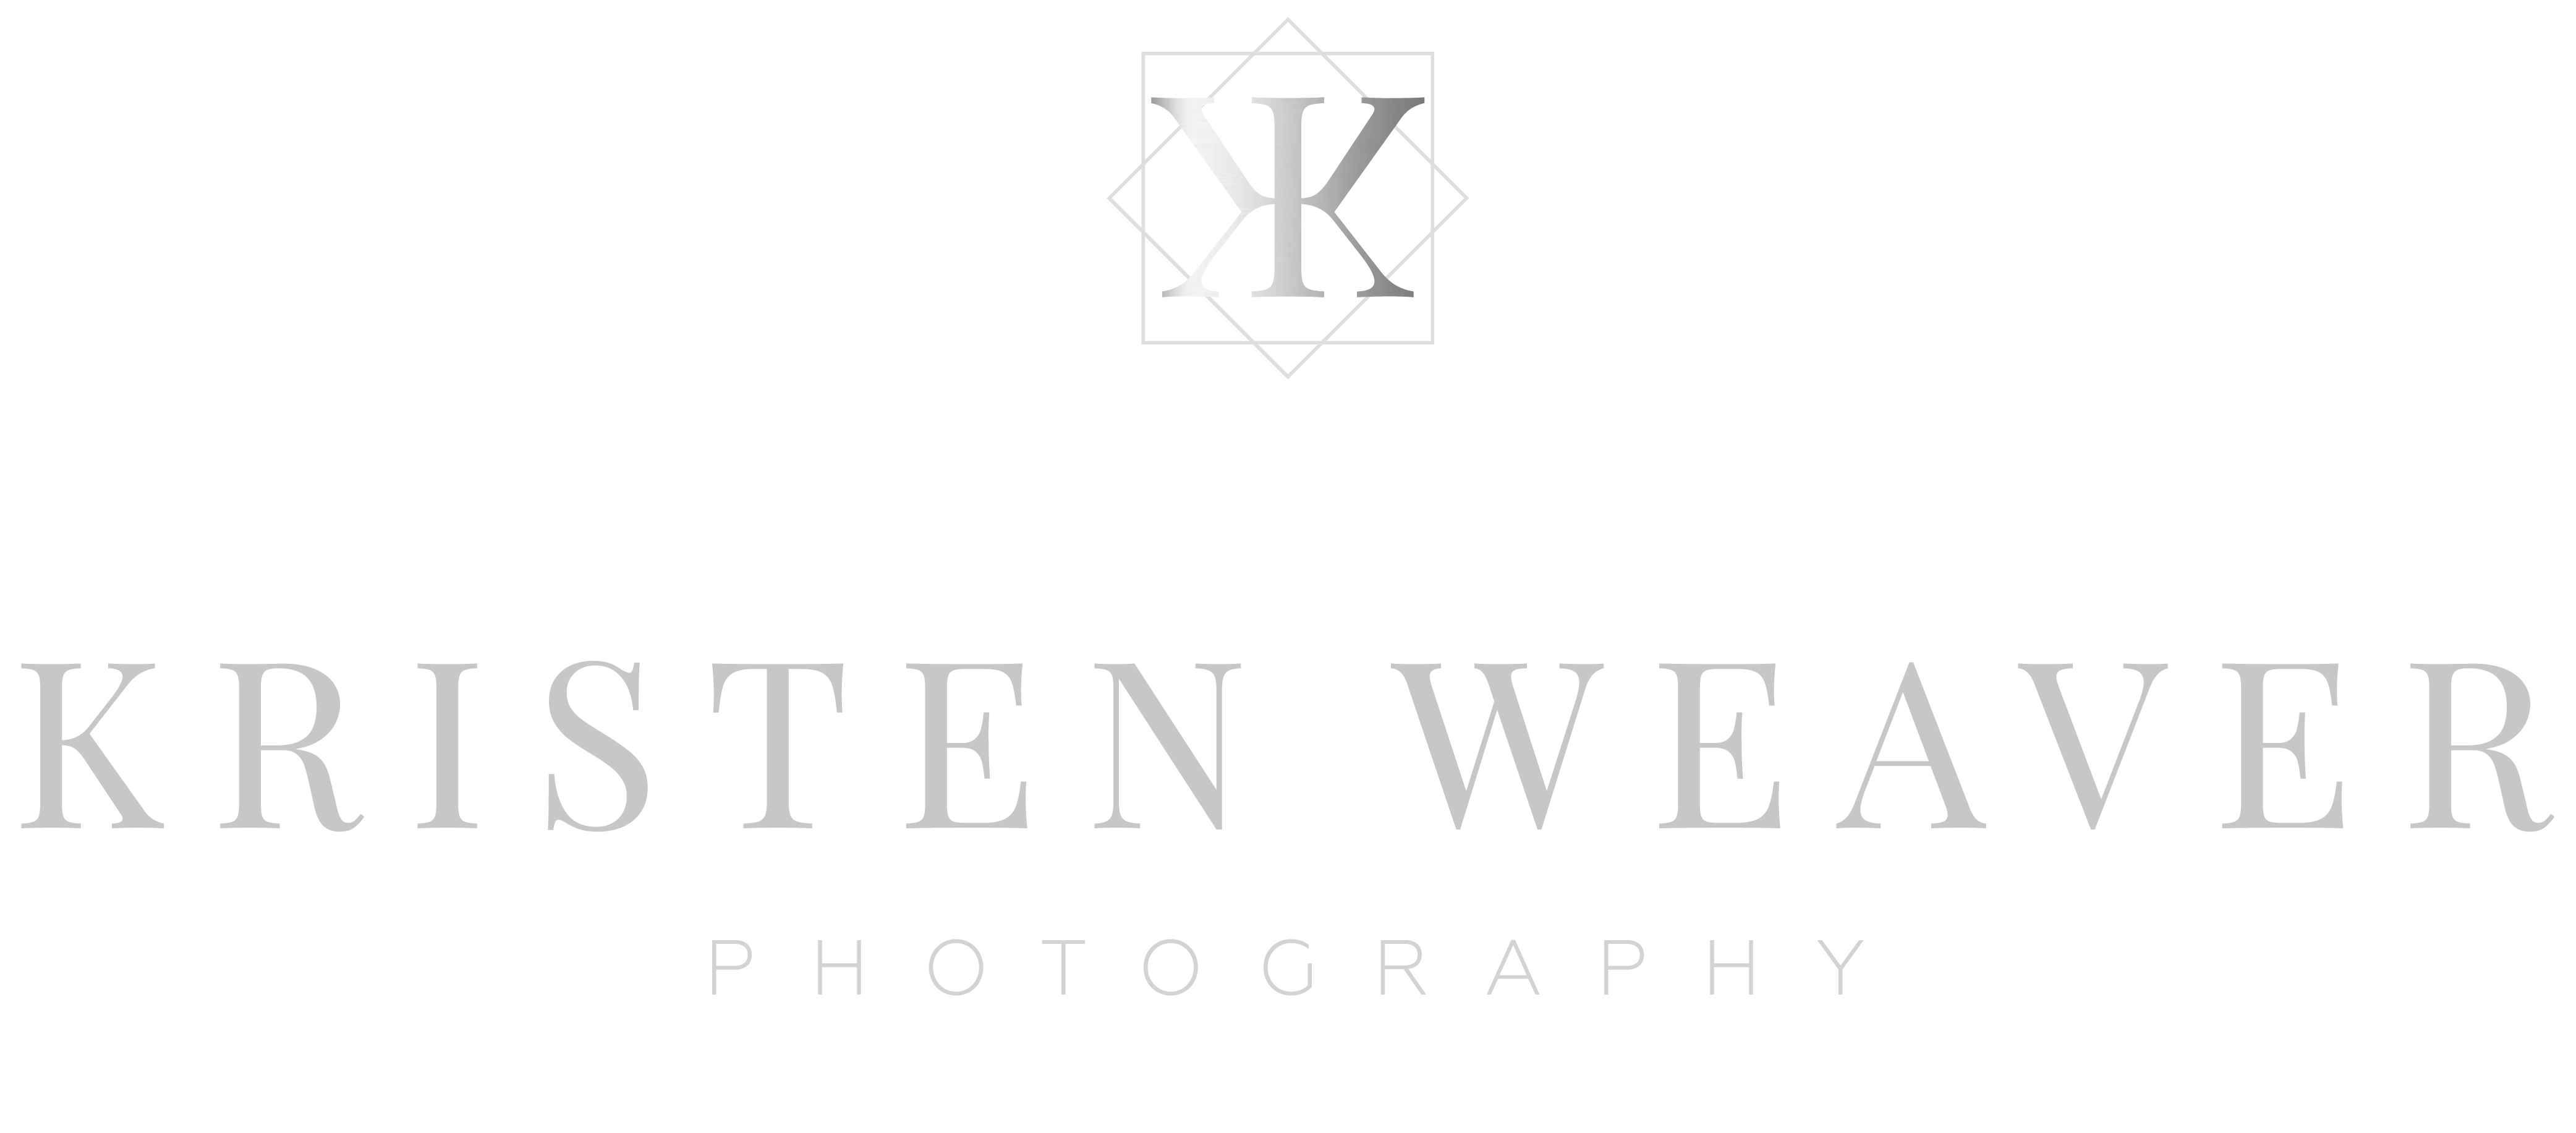 Orlando Wedding Photographers : Kristen Weaver Photography